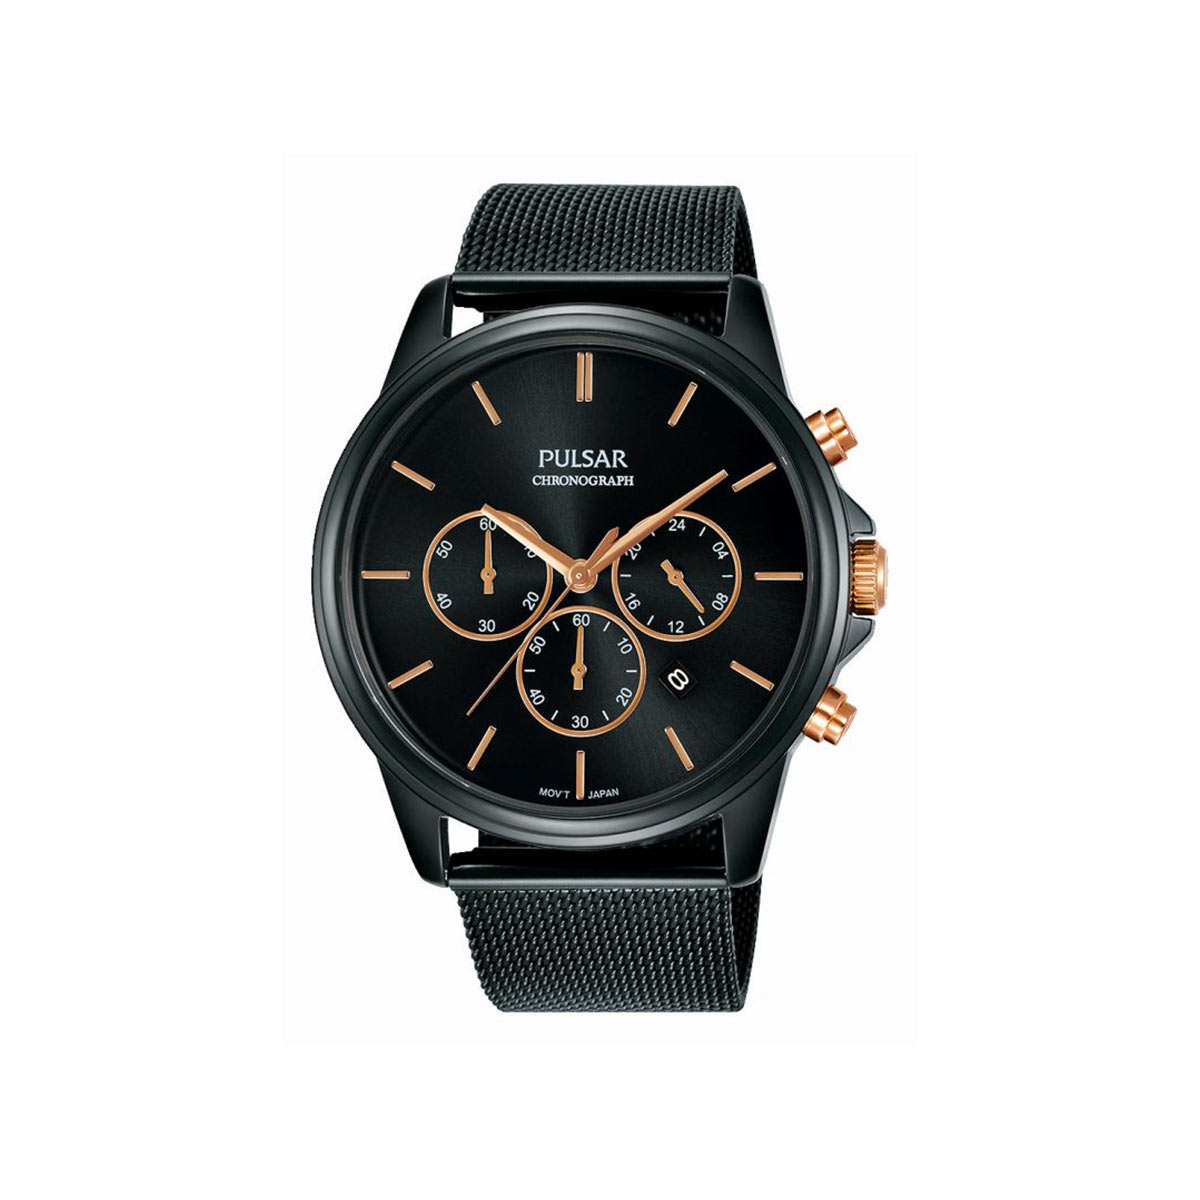 montre pulsar homme chronographe acier noir homme mod le pt3927x1 maty. Black Bedroom Furniture Sets. Home Design Ideas